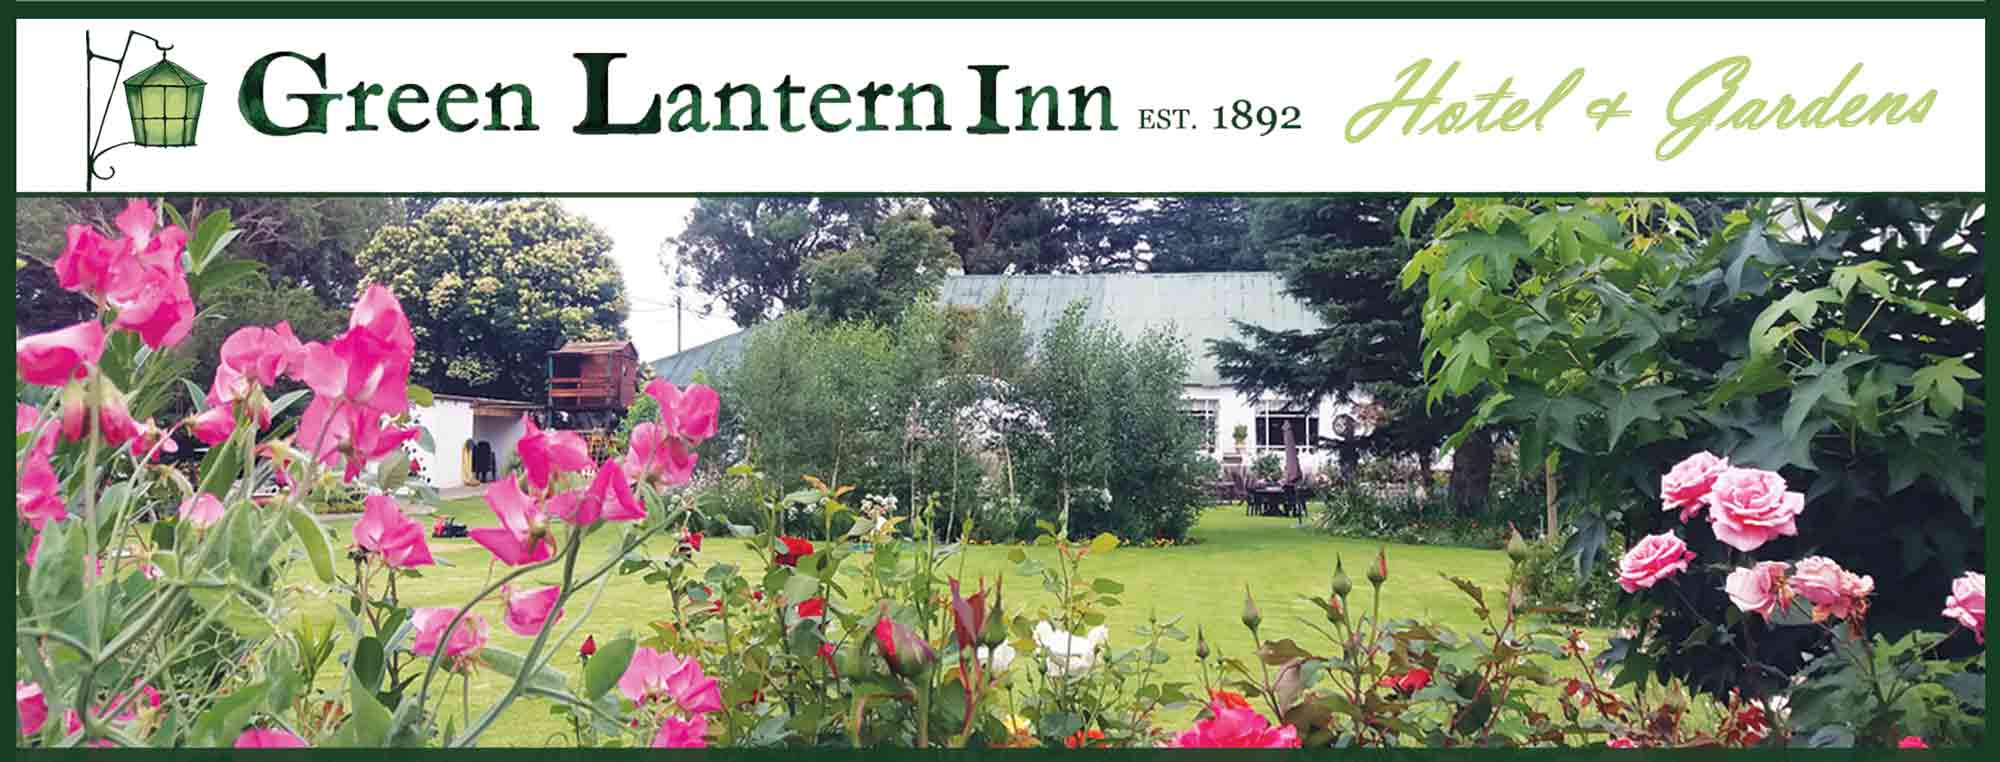 The Green Lantern Inn Hotel & Gardens